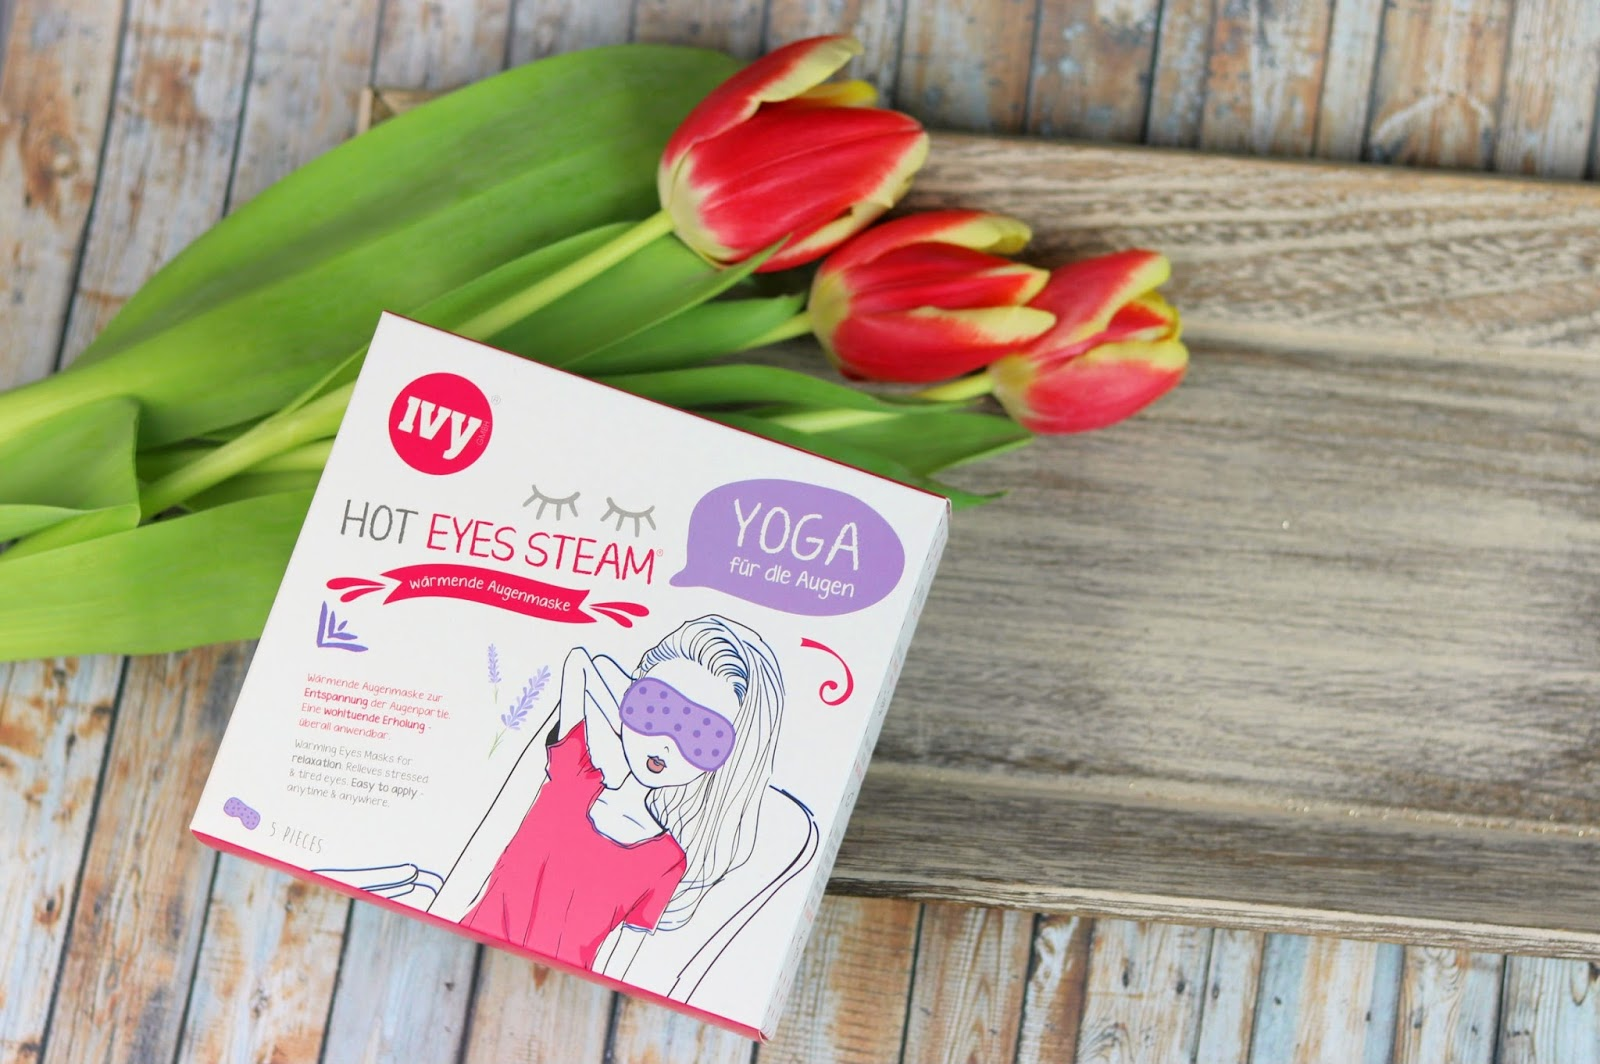 beauty blogger hamburg, bubble mask, drogerie, drogeriemarkt, hautpflege, hot eyes steam, hydro boost feuchtigkeitsgel, isana young, limited edition, makeup radierer, neuheiten, review, rossmann, trockene haut,